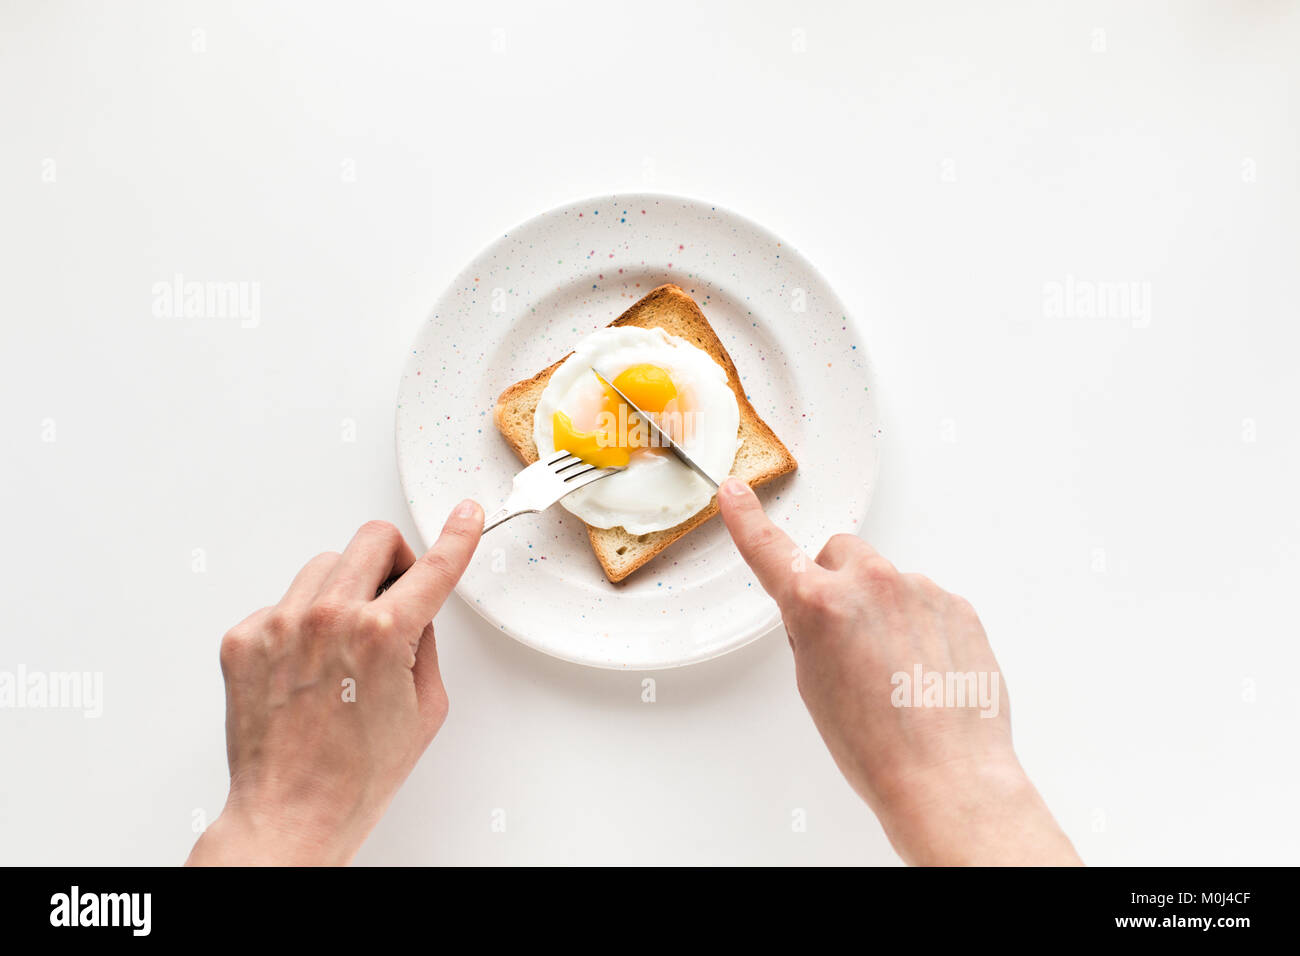 breakfast with fried egg on toast - Stock Image